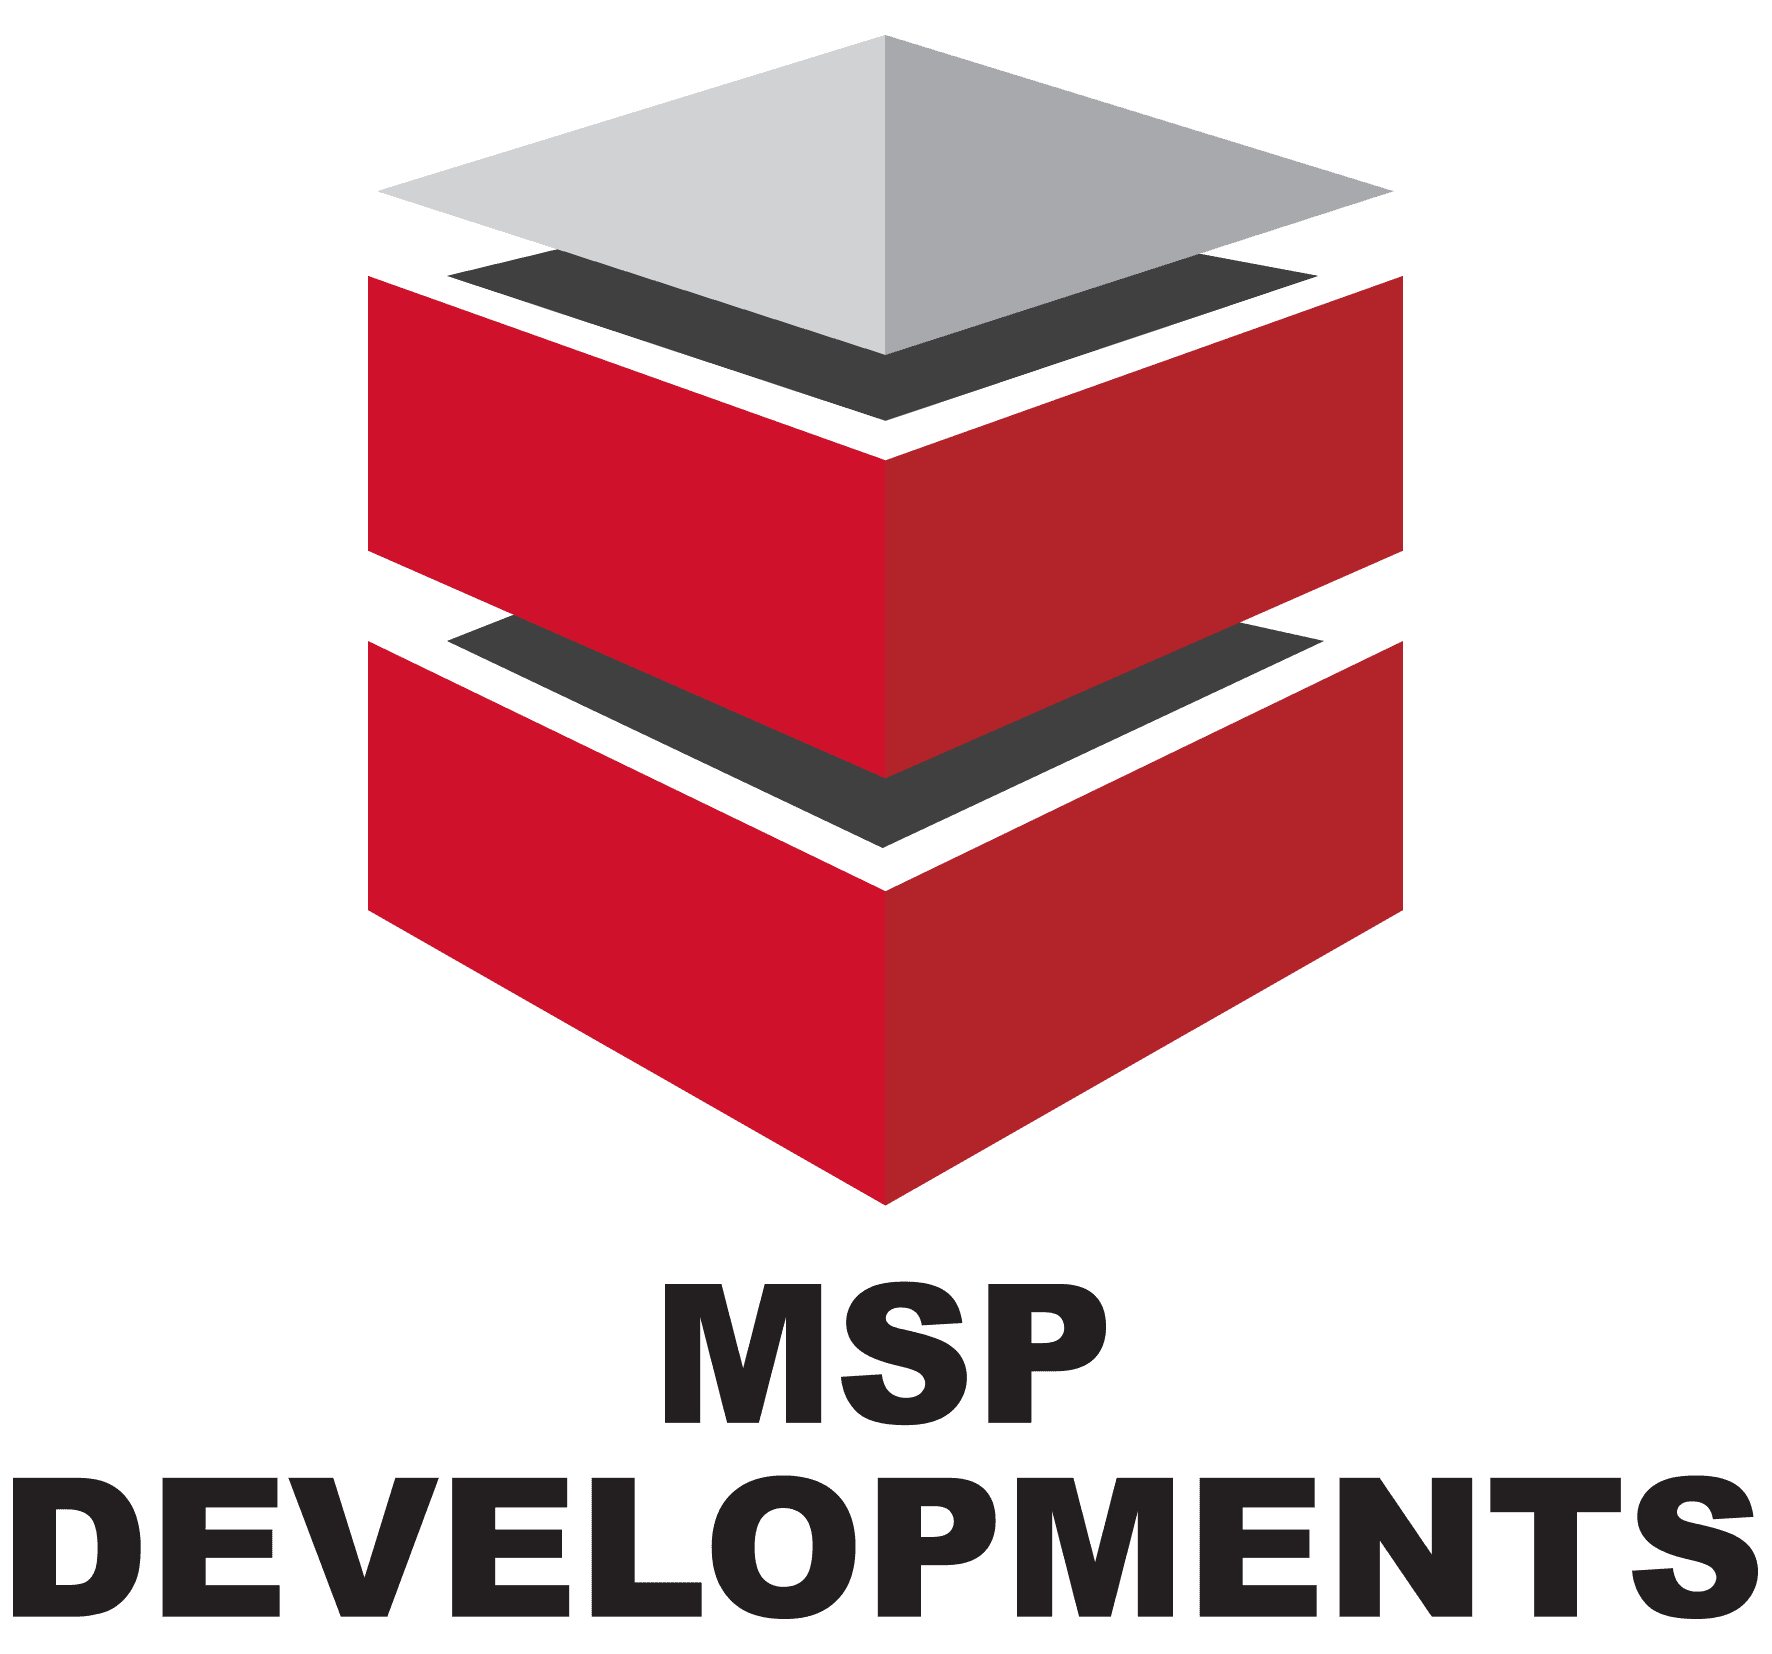 MSP Developments